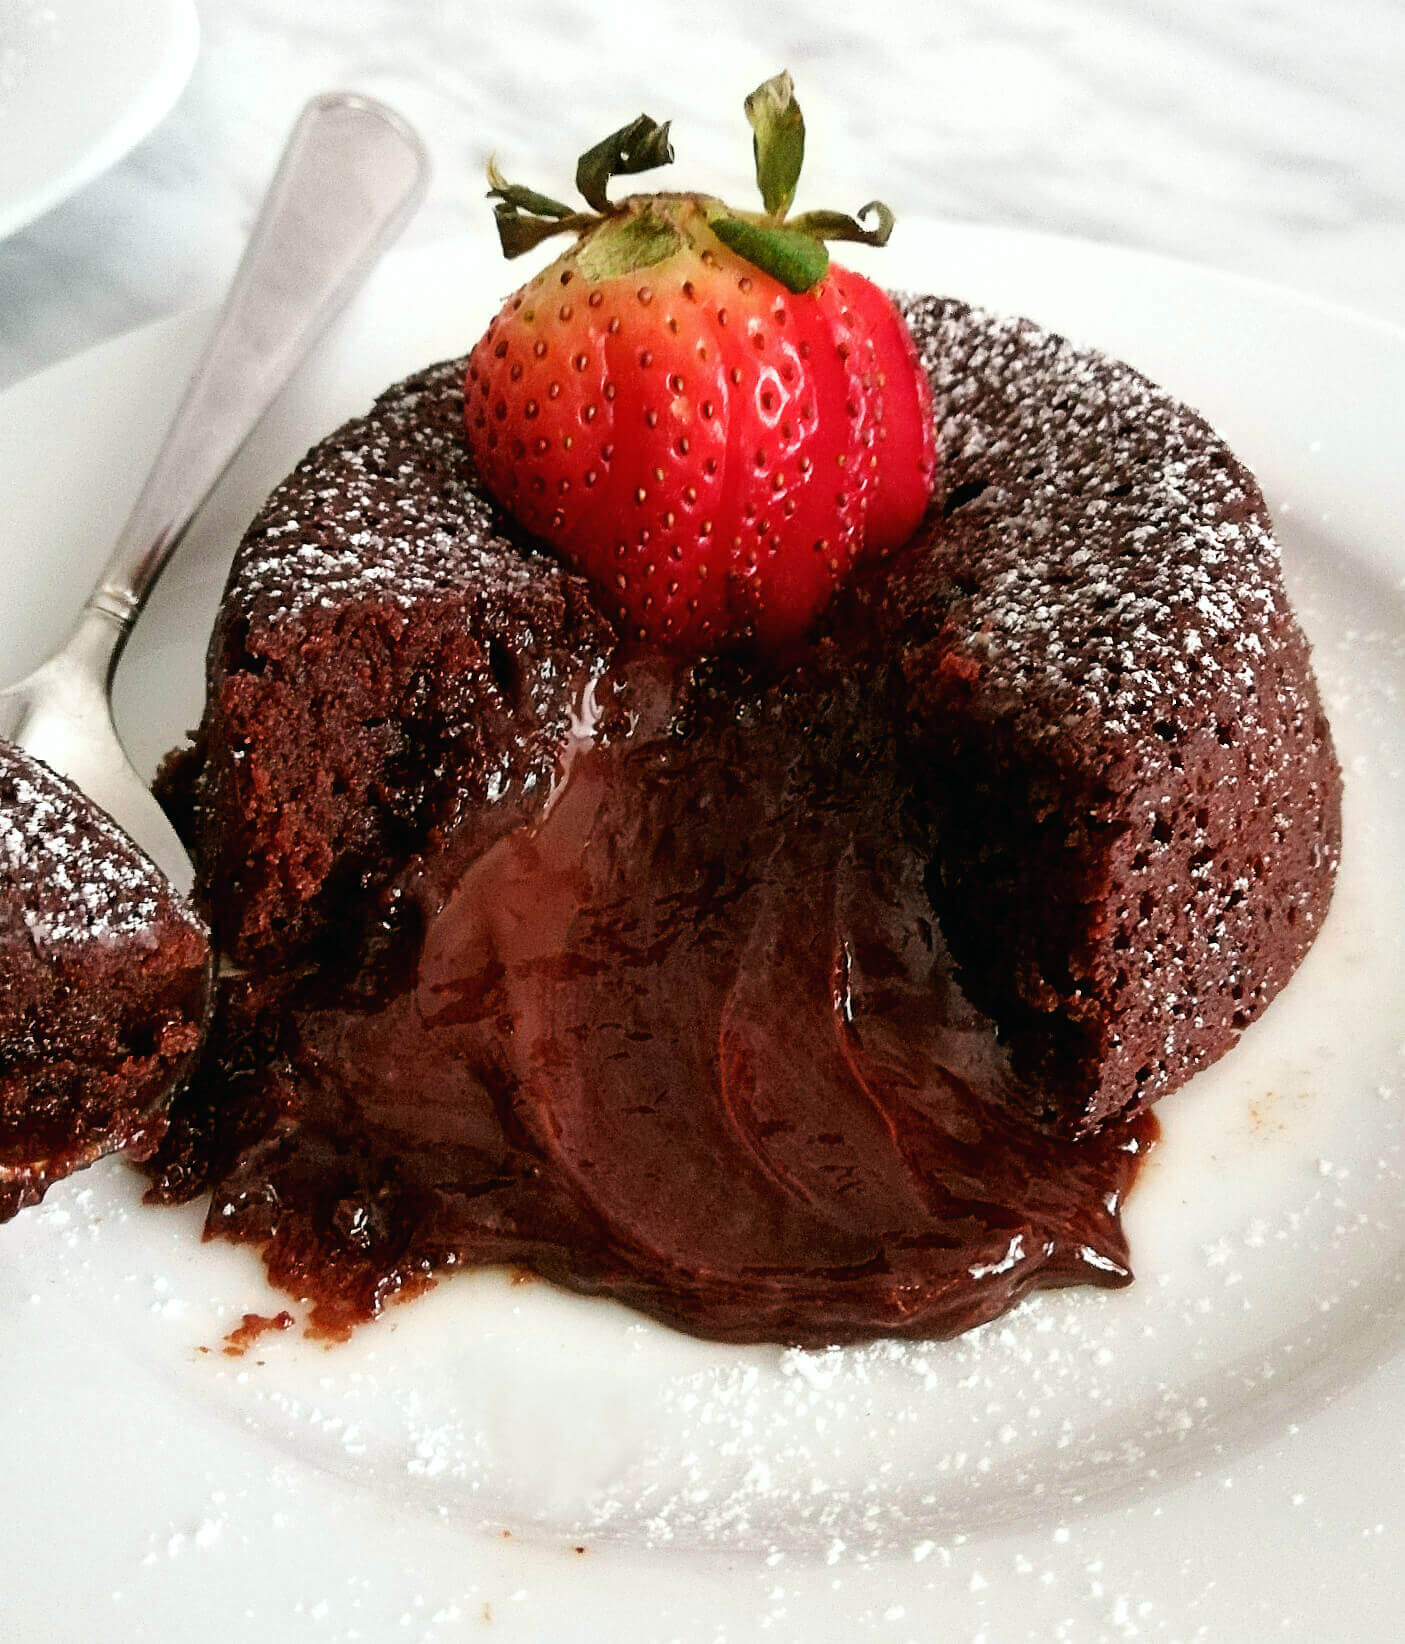 chocolate lava cake dusted with powdered sugar and topped with strawberries (1)